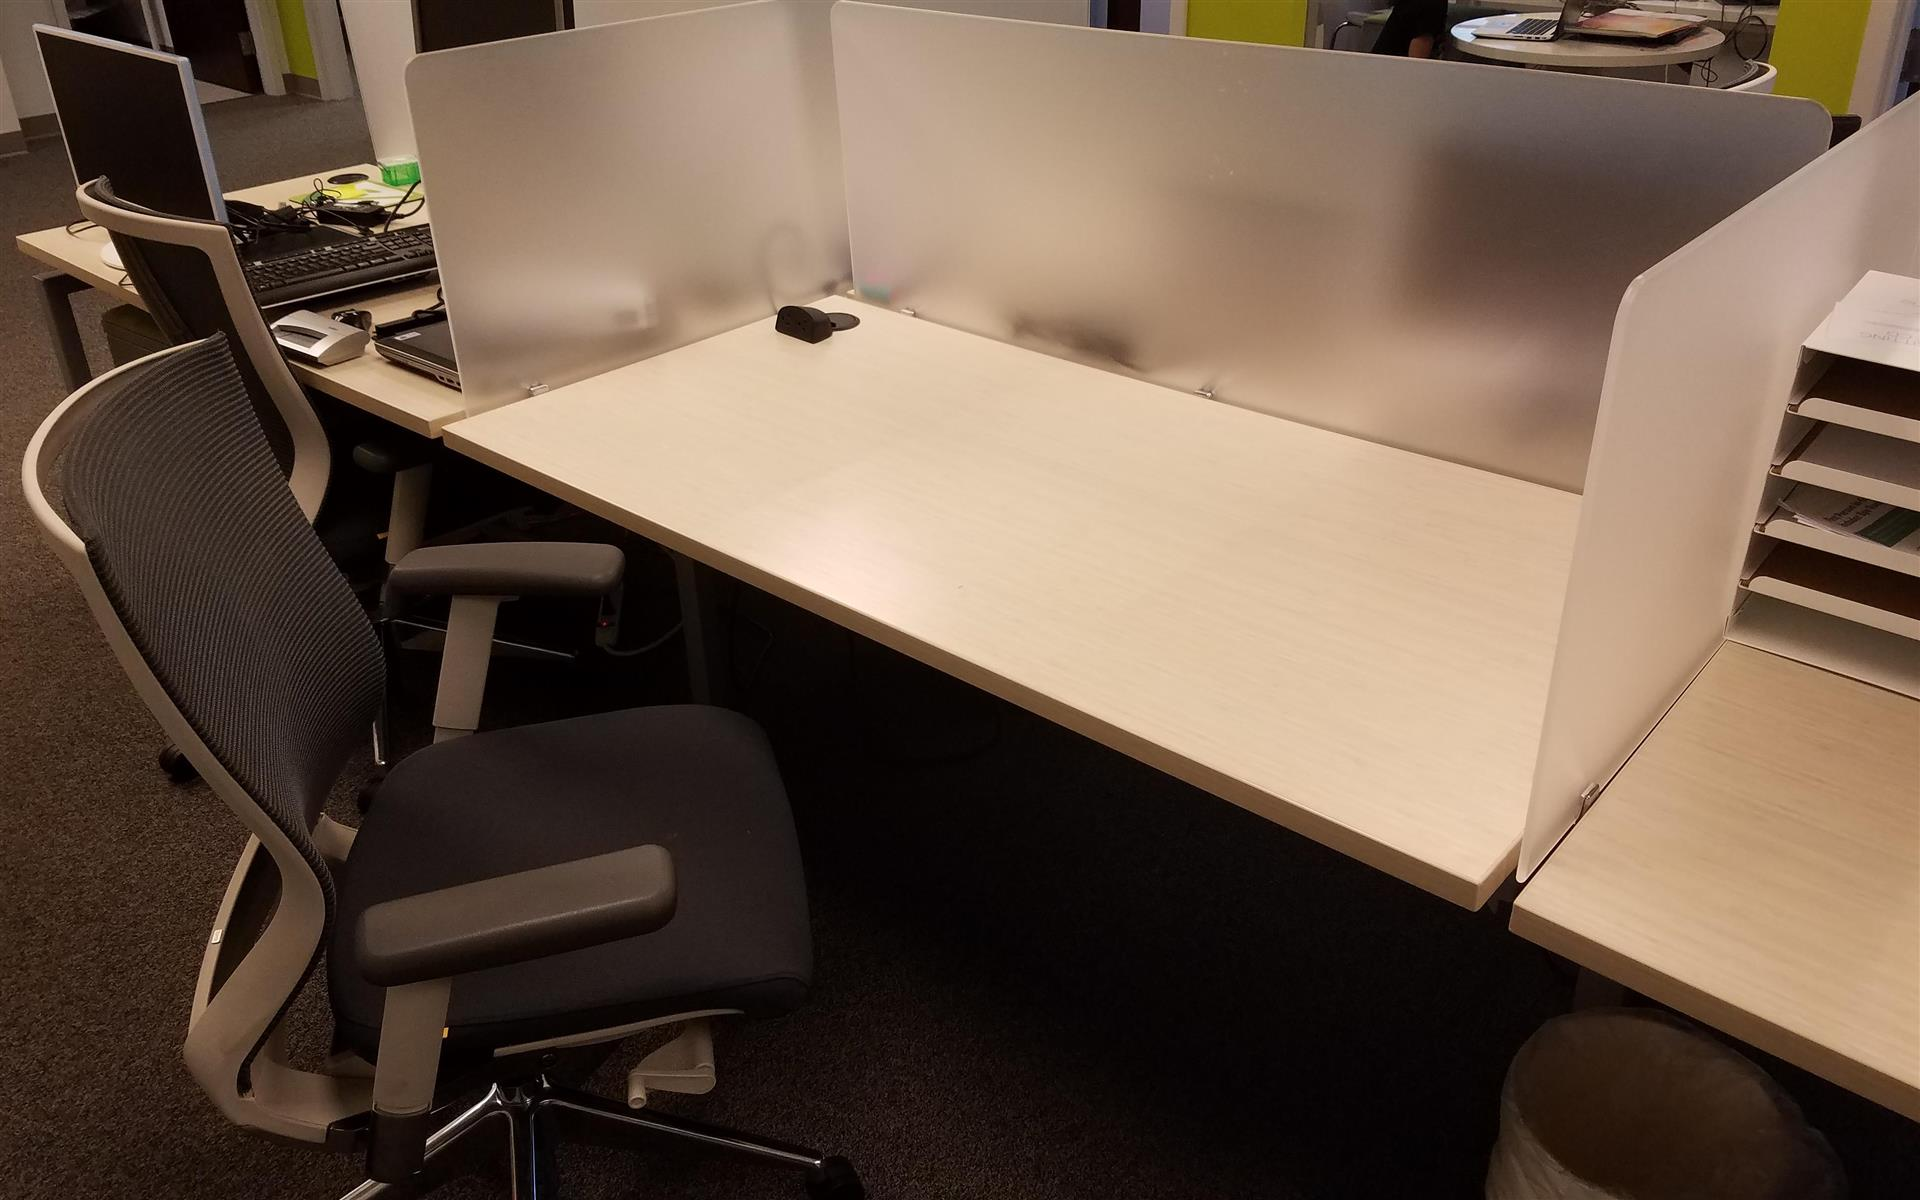 Key Lime Interactive - Desk Space in Suite 475